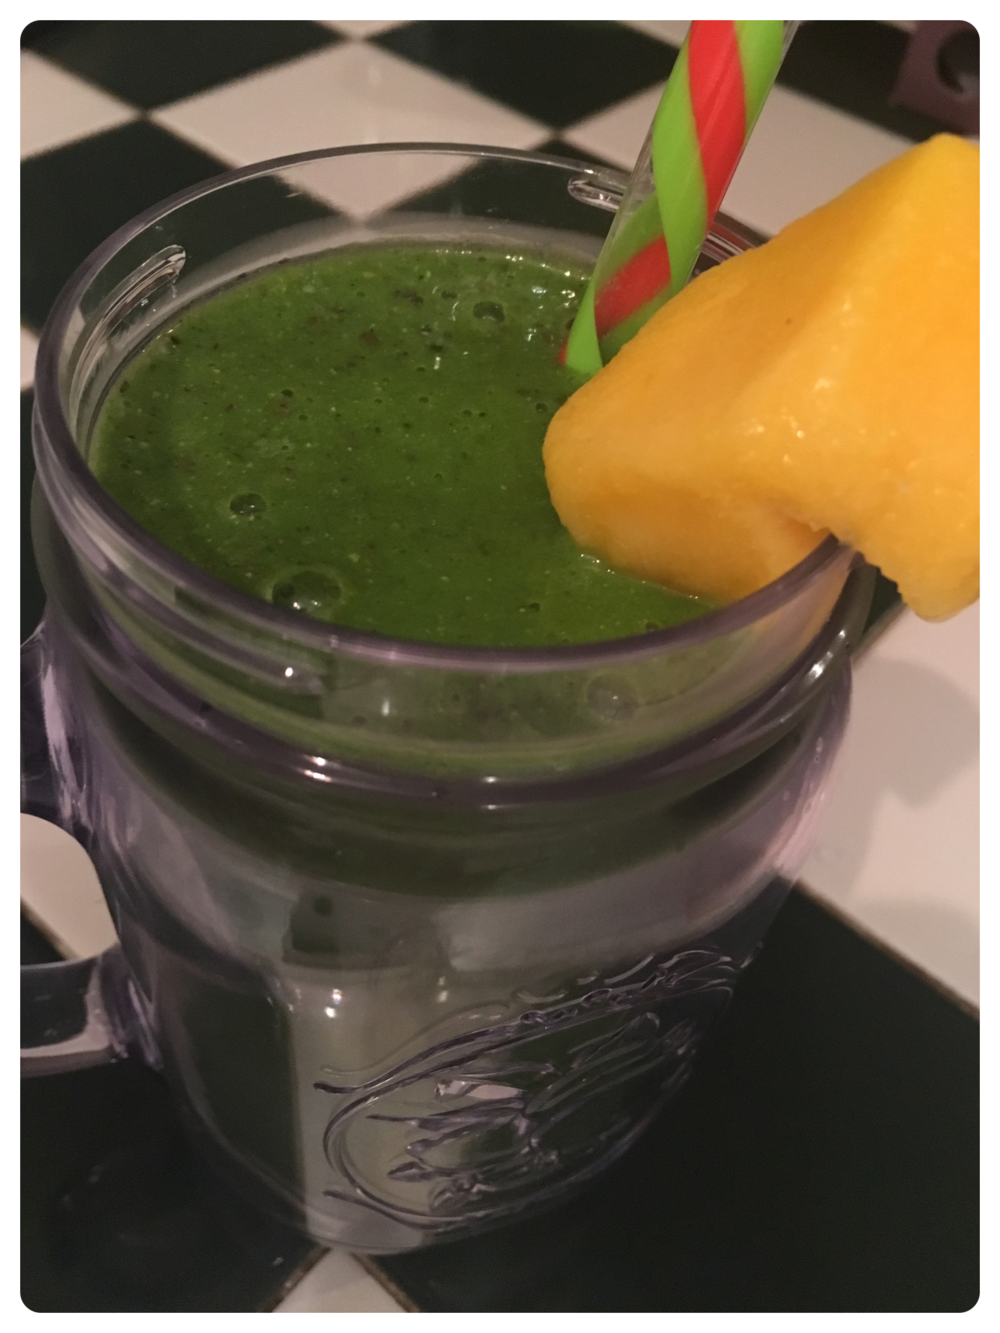 Mango Hemp Green Smoothie   Ingredients:  1/2 cup Almond Milk (unsweetened) 1/2 cup Mango 2 cups Spinach 1 Banana 1 tbsp Hemp Seeds (ground) 1/8 tsp Salt                                                  4-5 Ice Cubes  Directions:  Combine all ingredients together in a blender and blend on high until smooth.